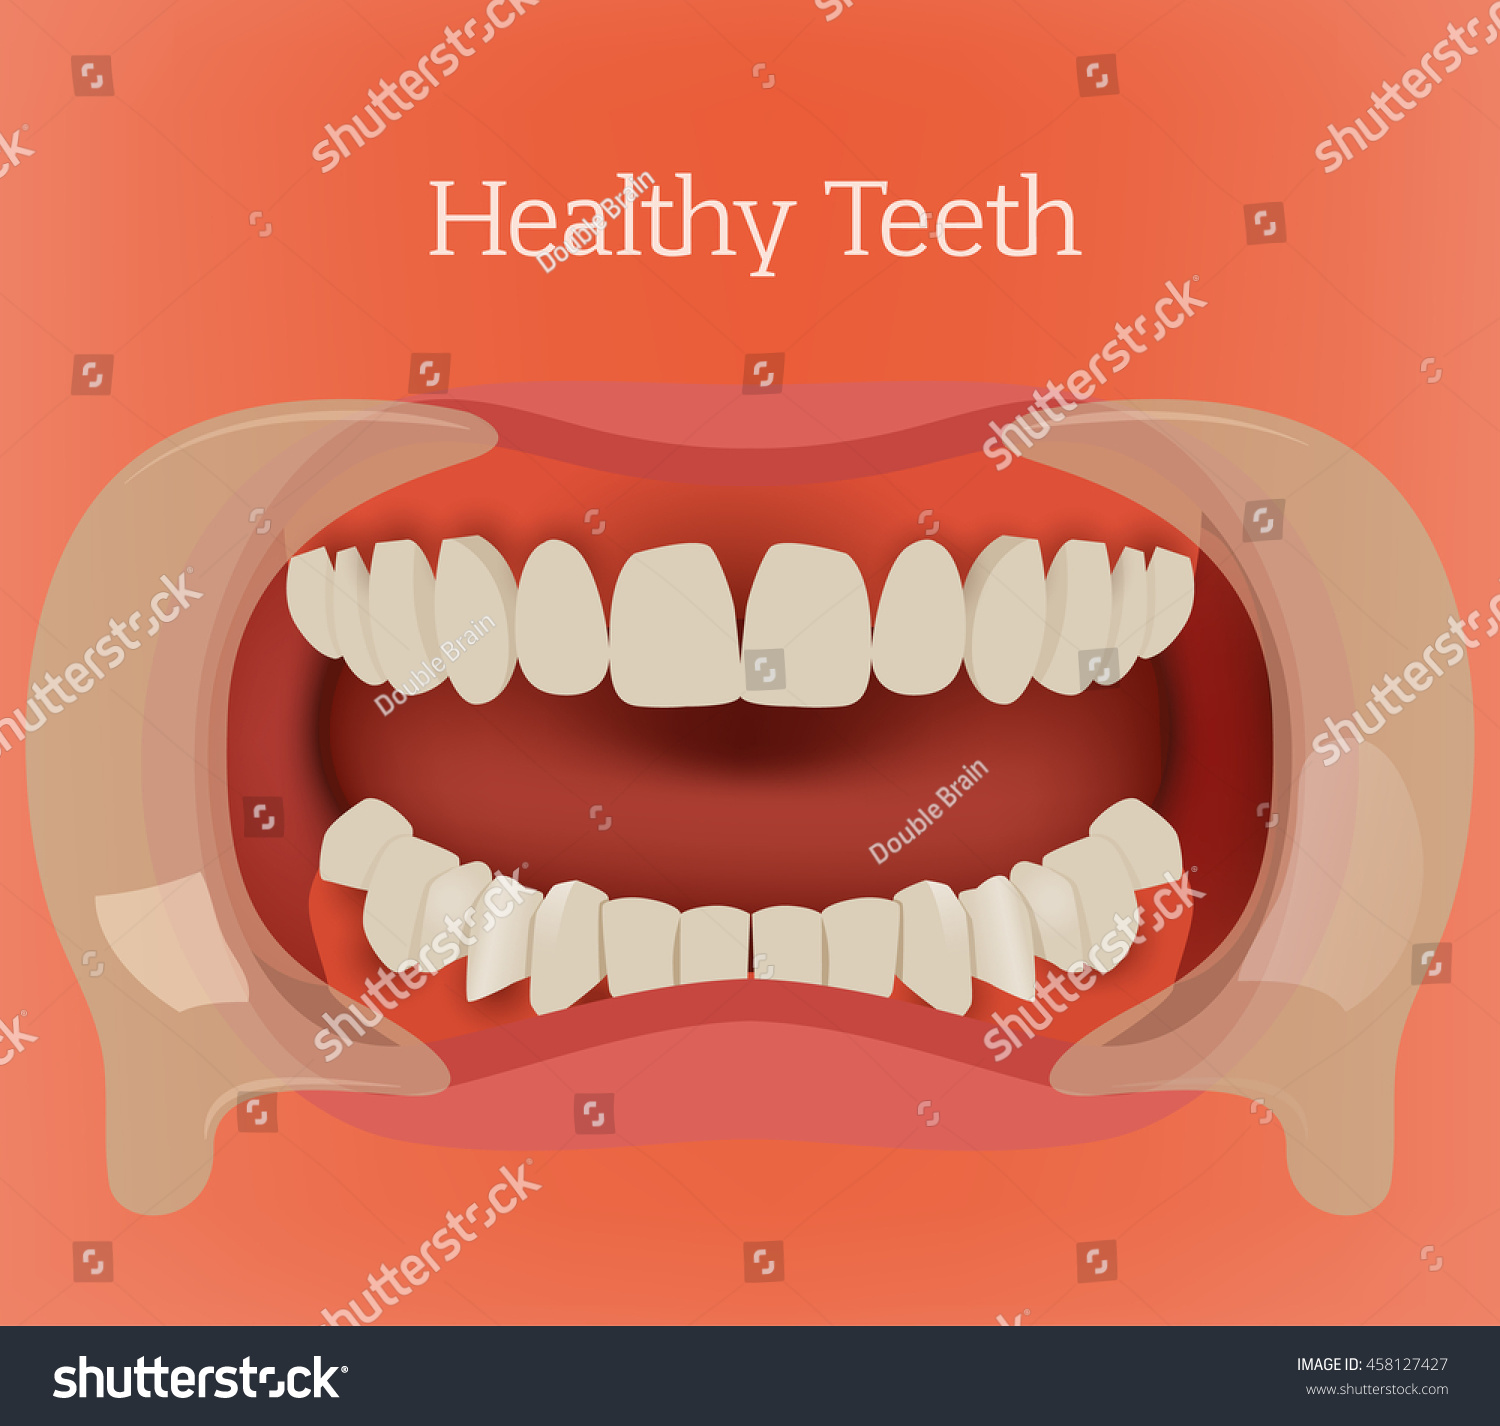 Healthy Teeth Illustration Vector Dental Image Stock Vektorgrafik